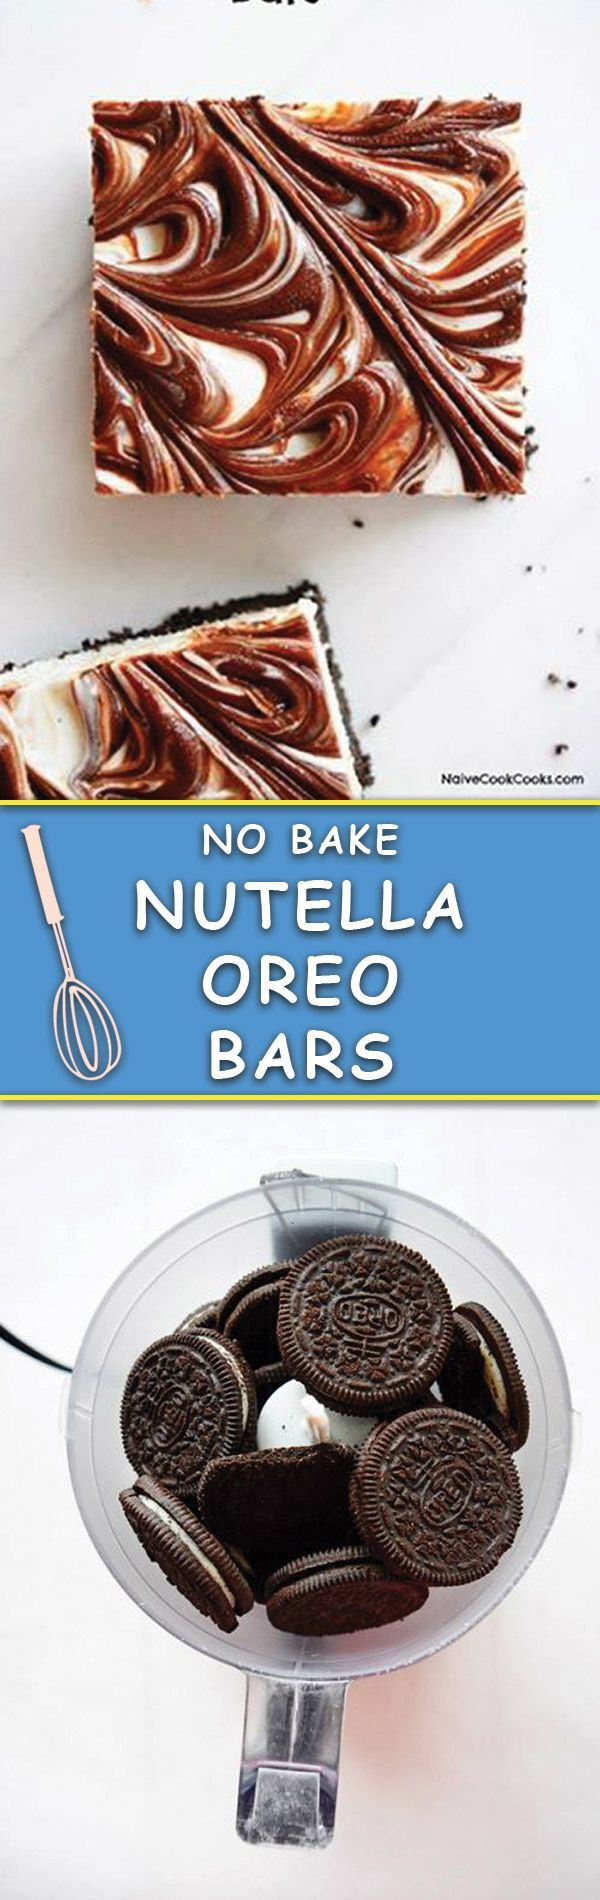 These No Bake/No Cook OREO NUTELLA BARS are stupidly easy, just few ingredients needed and everyone gobbles them up in no time!